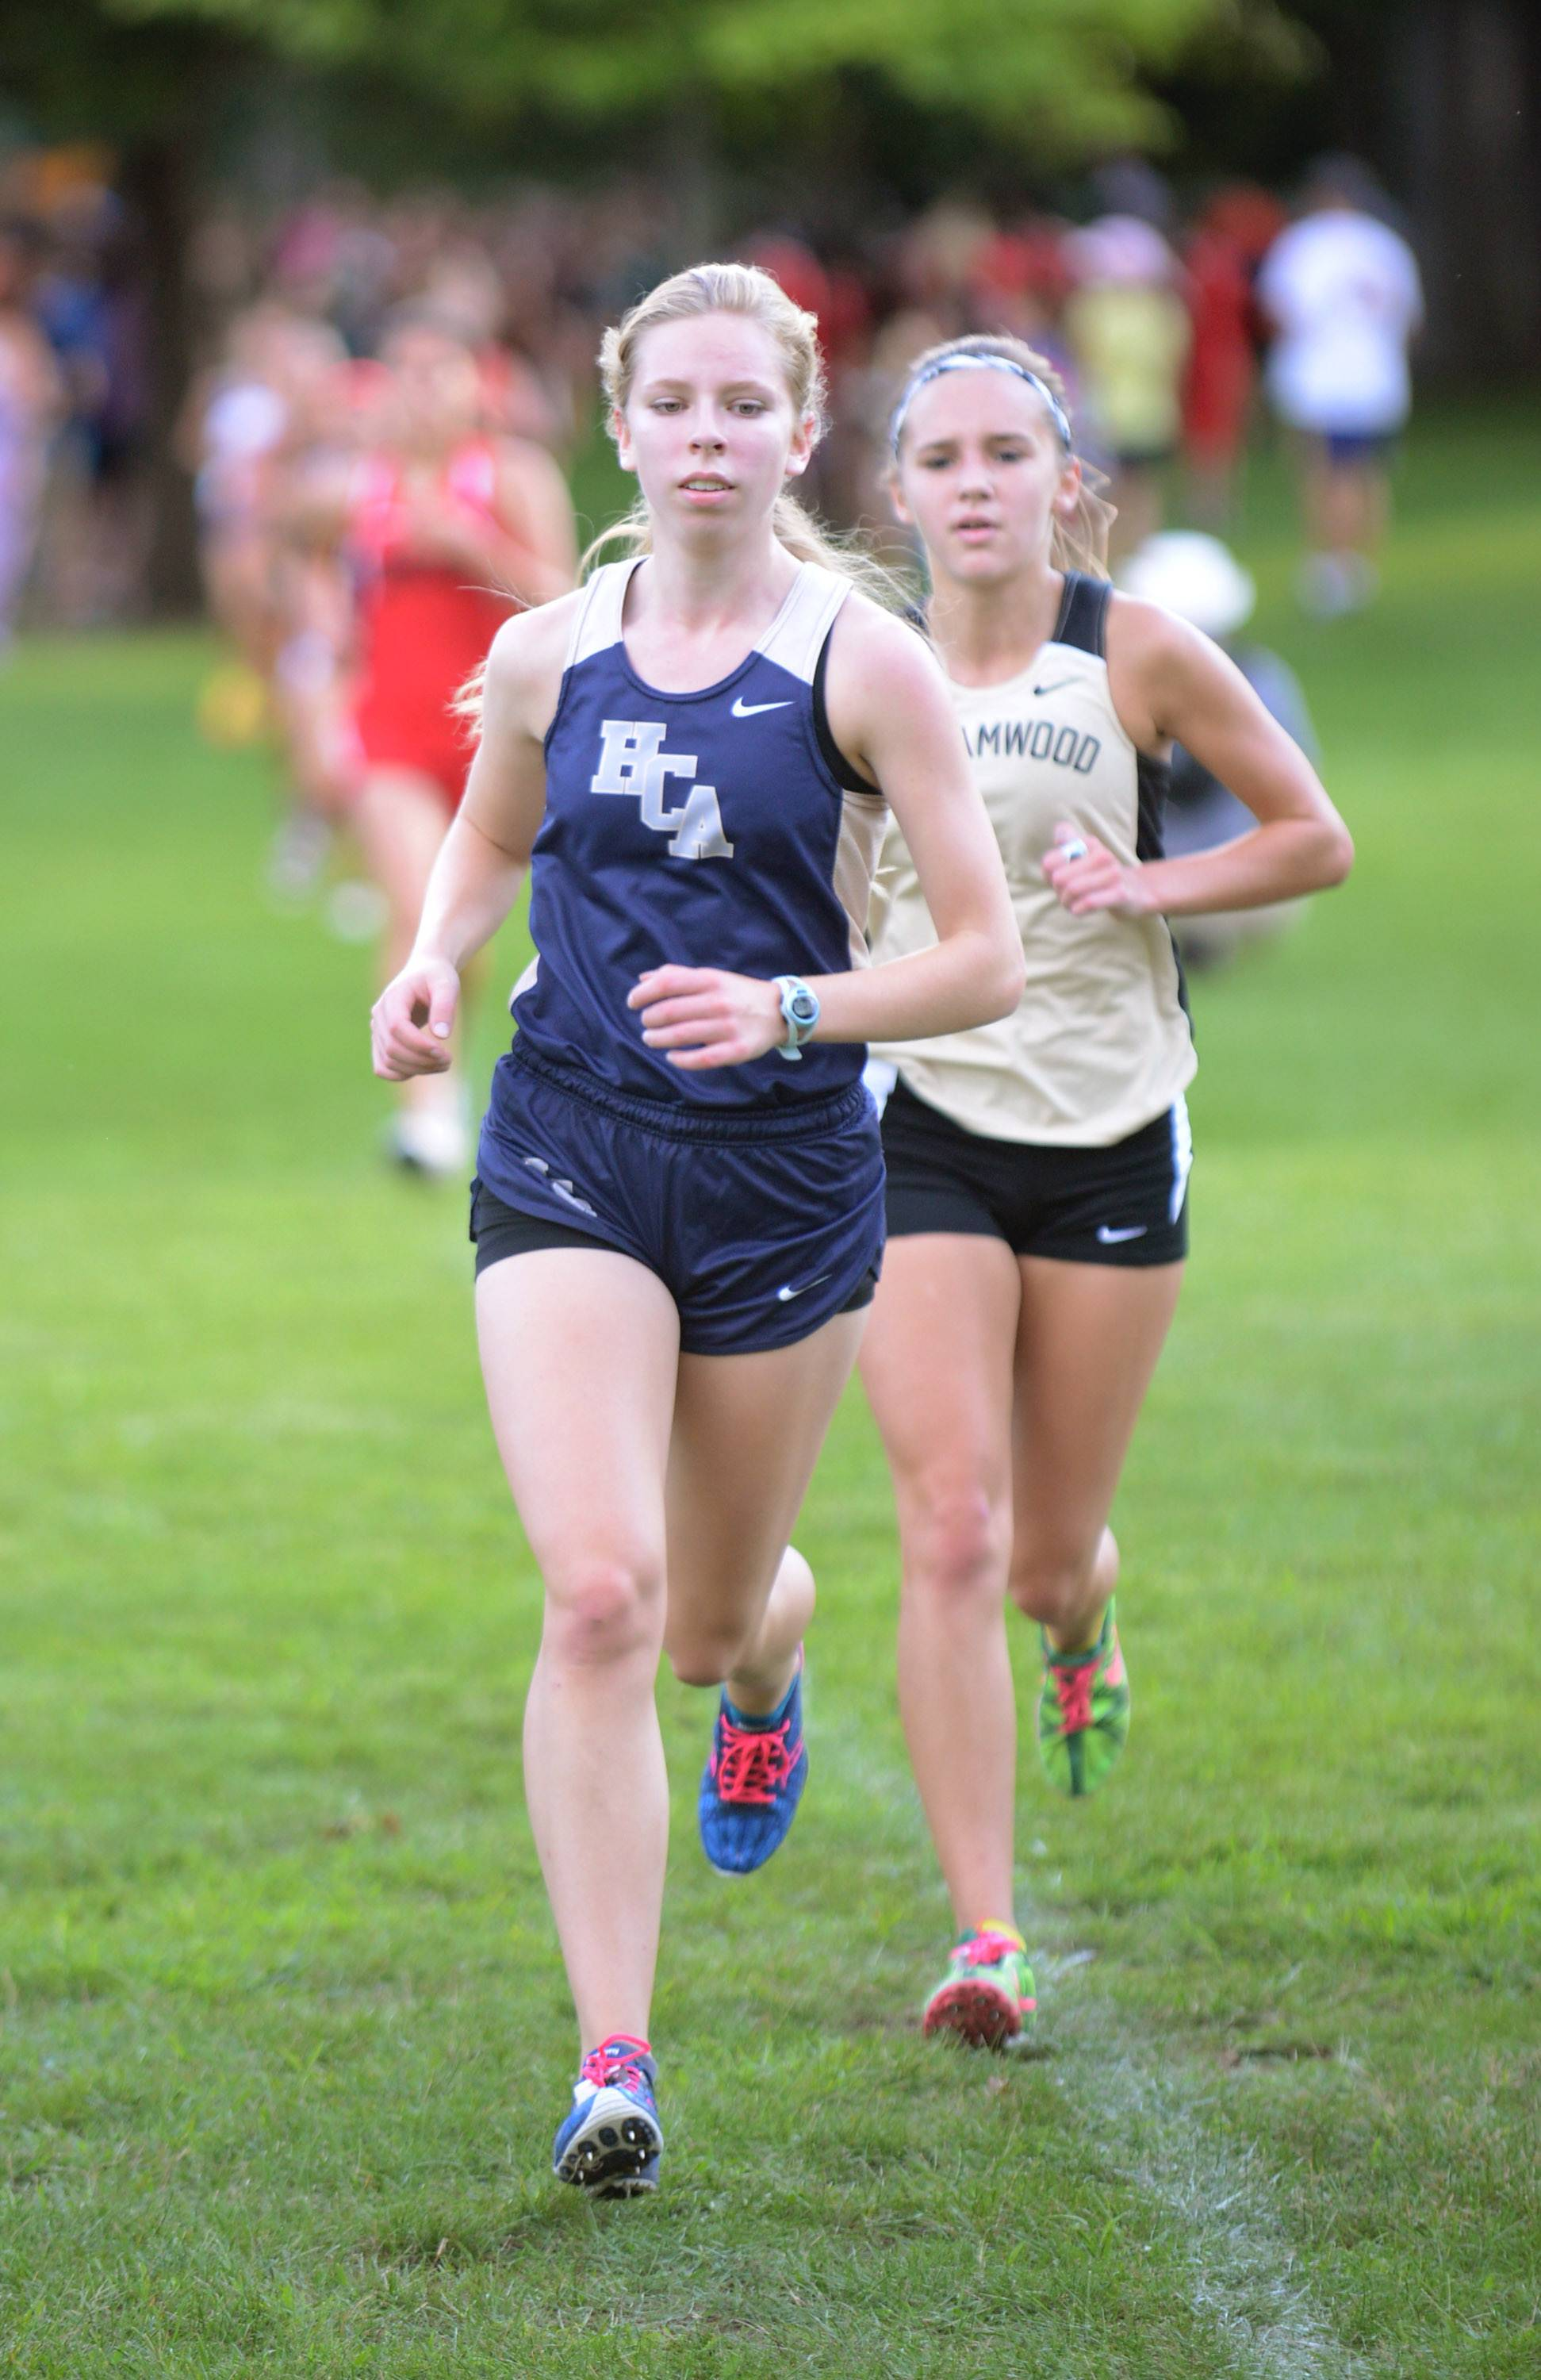 Harvest Christian Academy's Valerie Richter would cross first for her varsity team at the Elgin Invite cross country meet at Lords Park in Elgin on Tuesday.